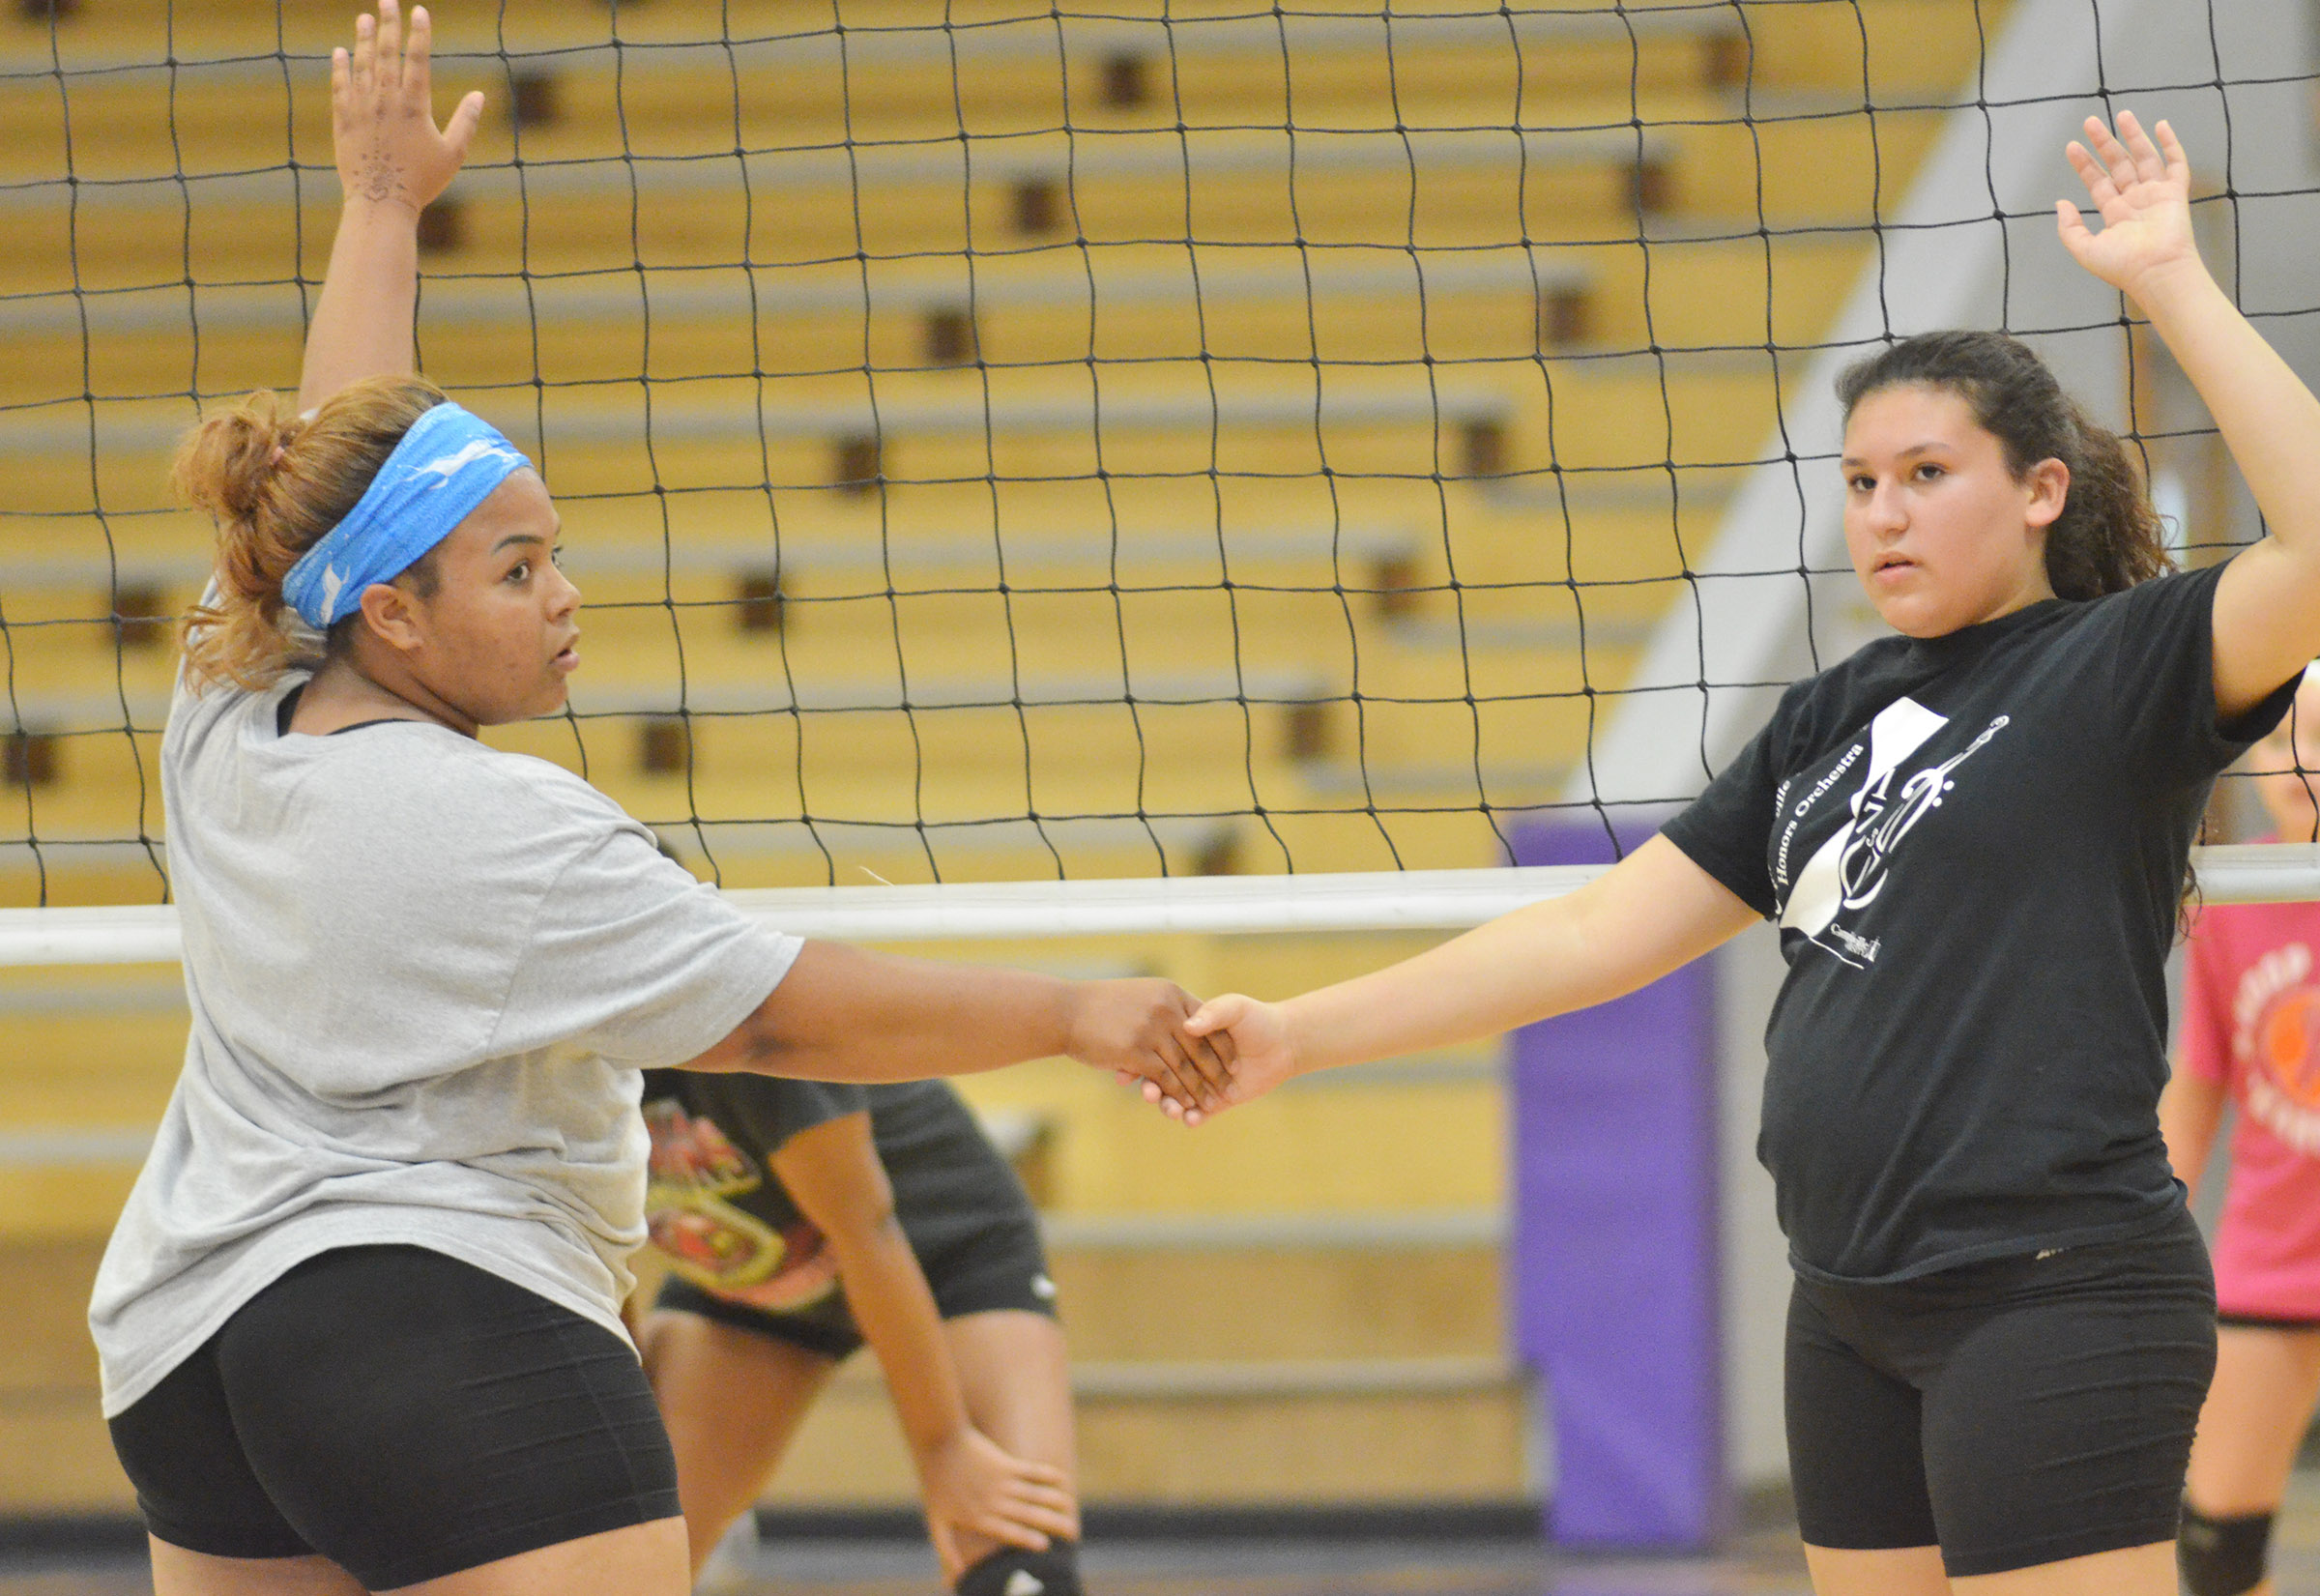 CHS junior Natalie Caldwell, at left, and freshman Anna Clara Moura watch the serve.